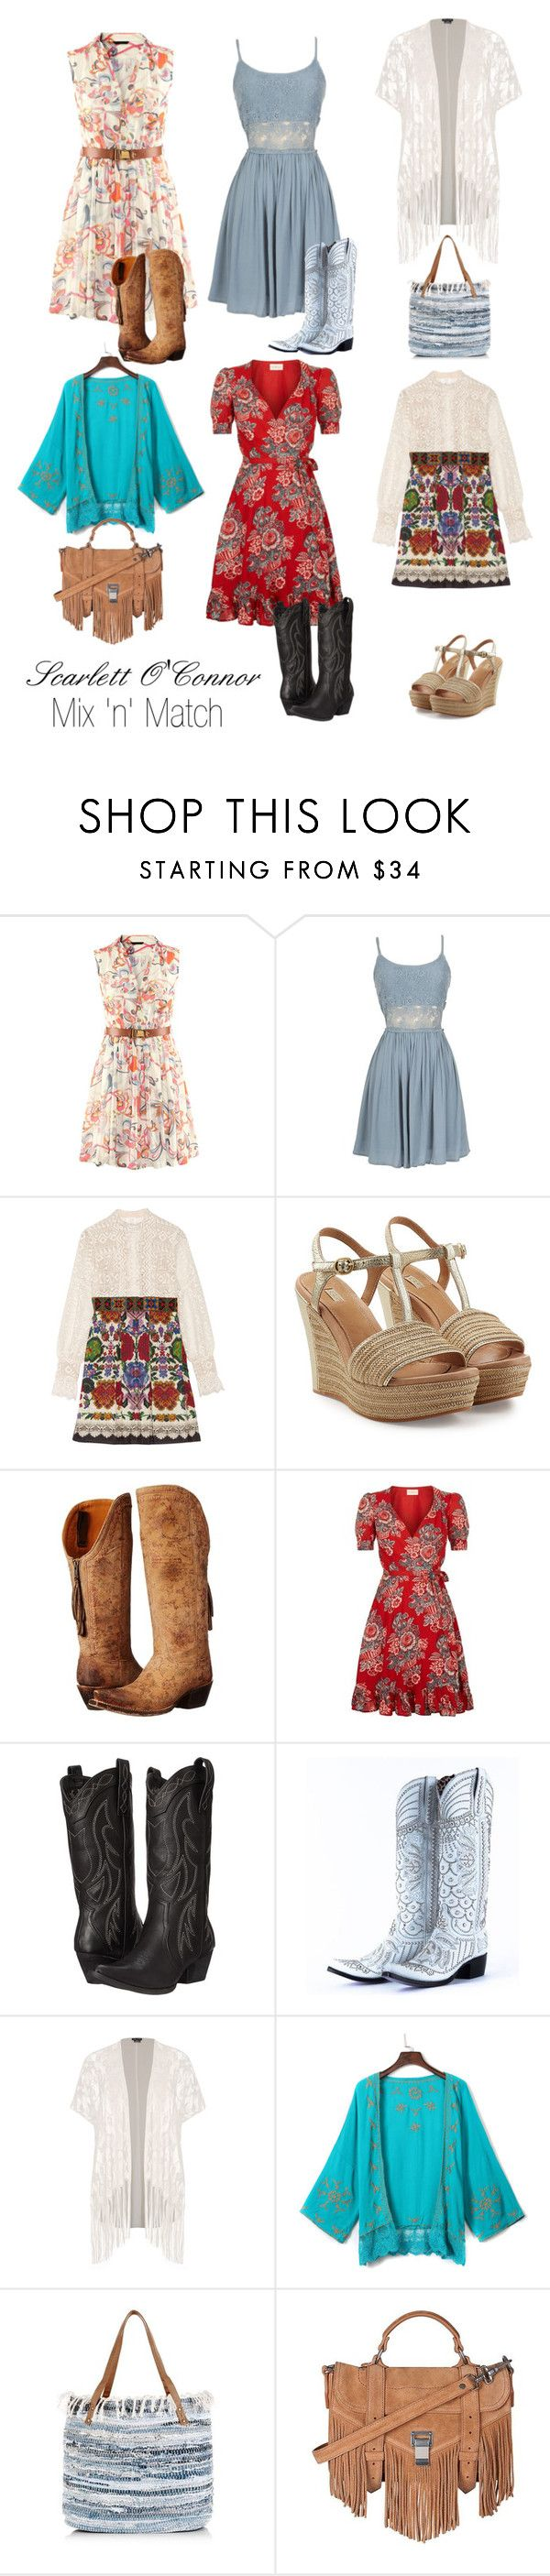 """Nashvile - Scarlett O'Connor"" by atak-kat on Polyvore featuring Anna Sui, UGG Australia, Lucchese, Denim & Supply by Ralph Lauren, Volatile, City Chic, WithChic, Proenza Schouler and country"